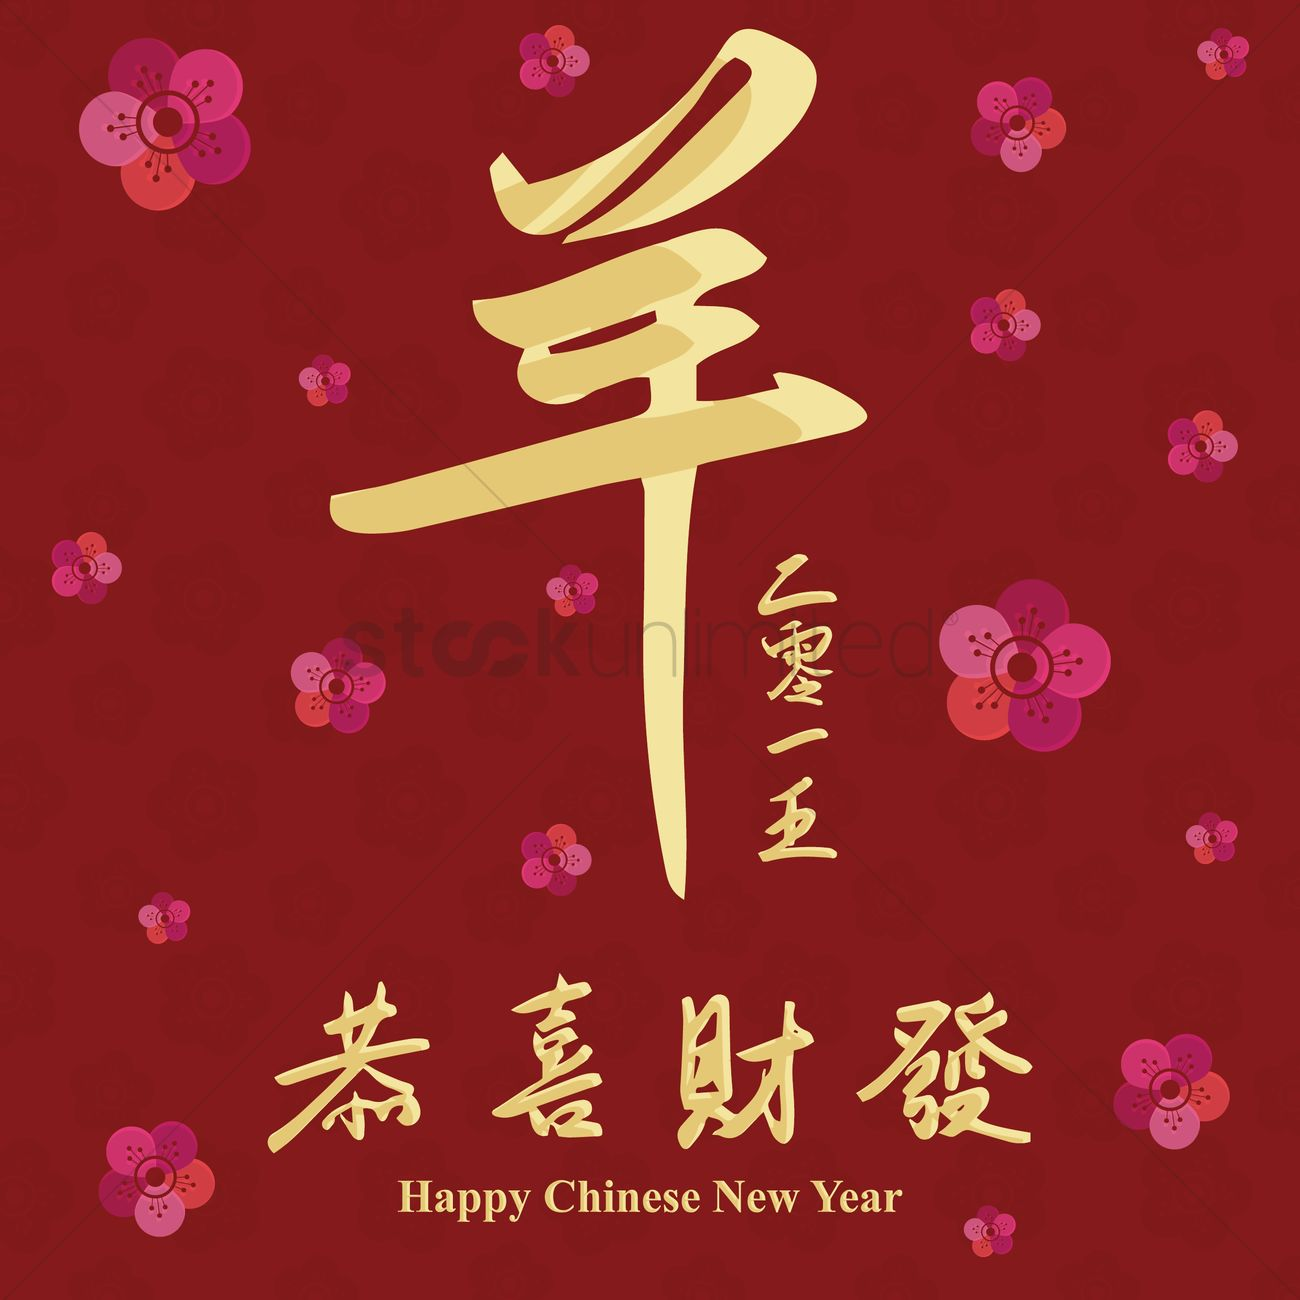 Year Of Goat Chinese New Year Greetings Vector Image 1409731